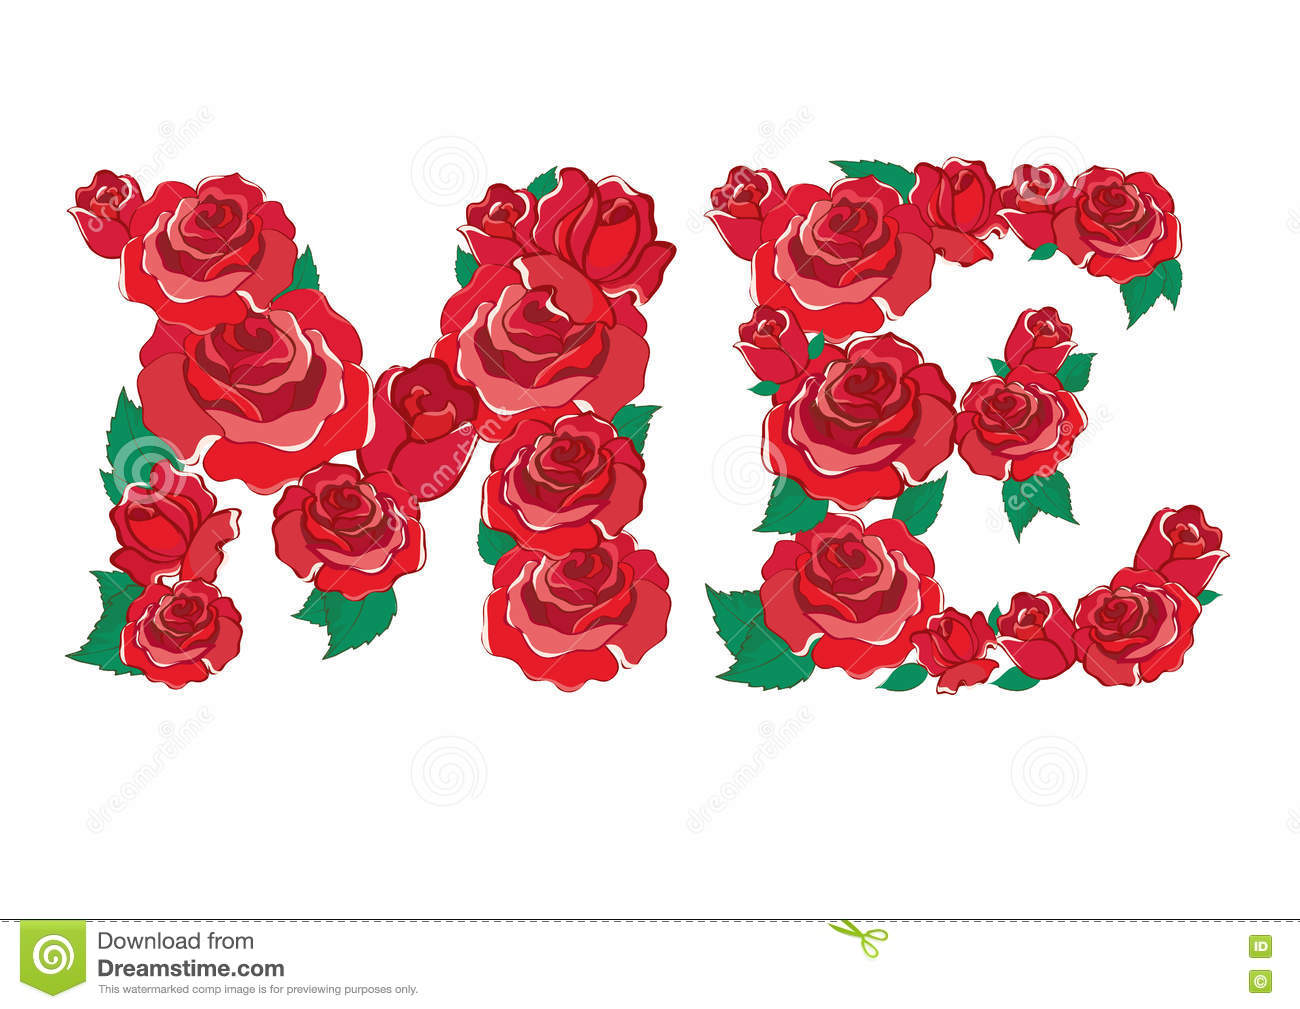 Red Rose In ME Alphabet Vector Stock Vector - Image: 75441867